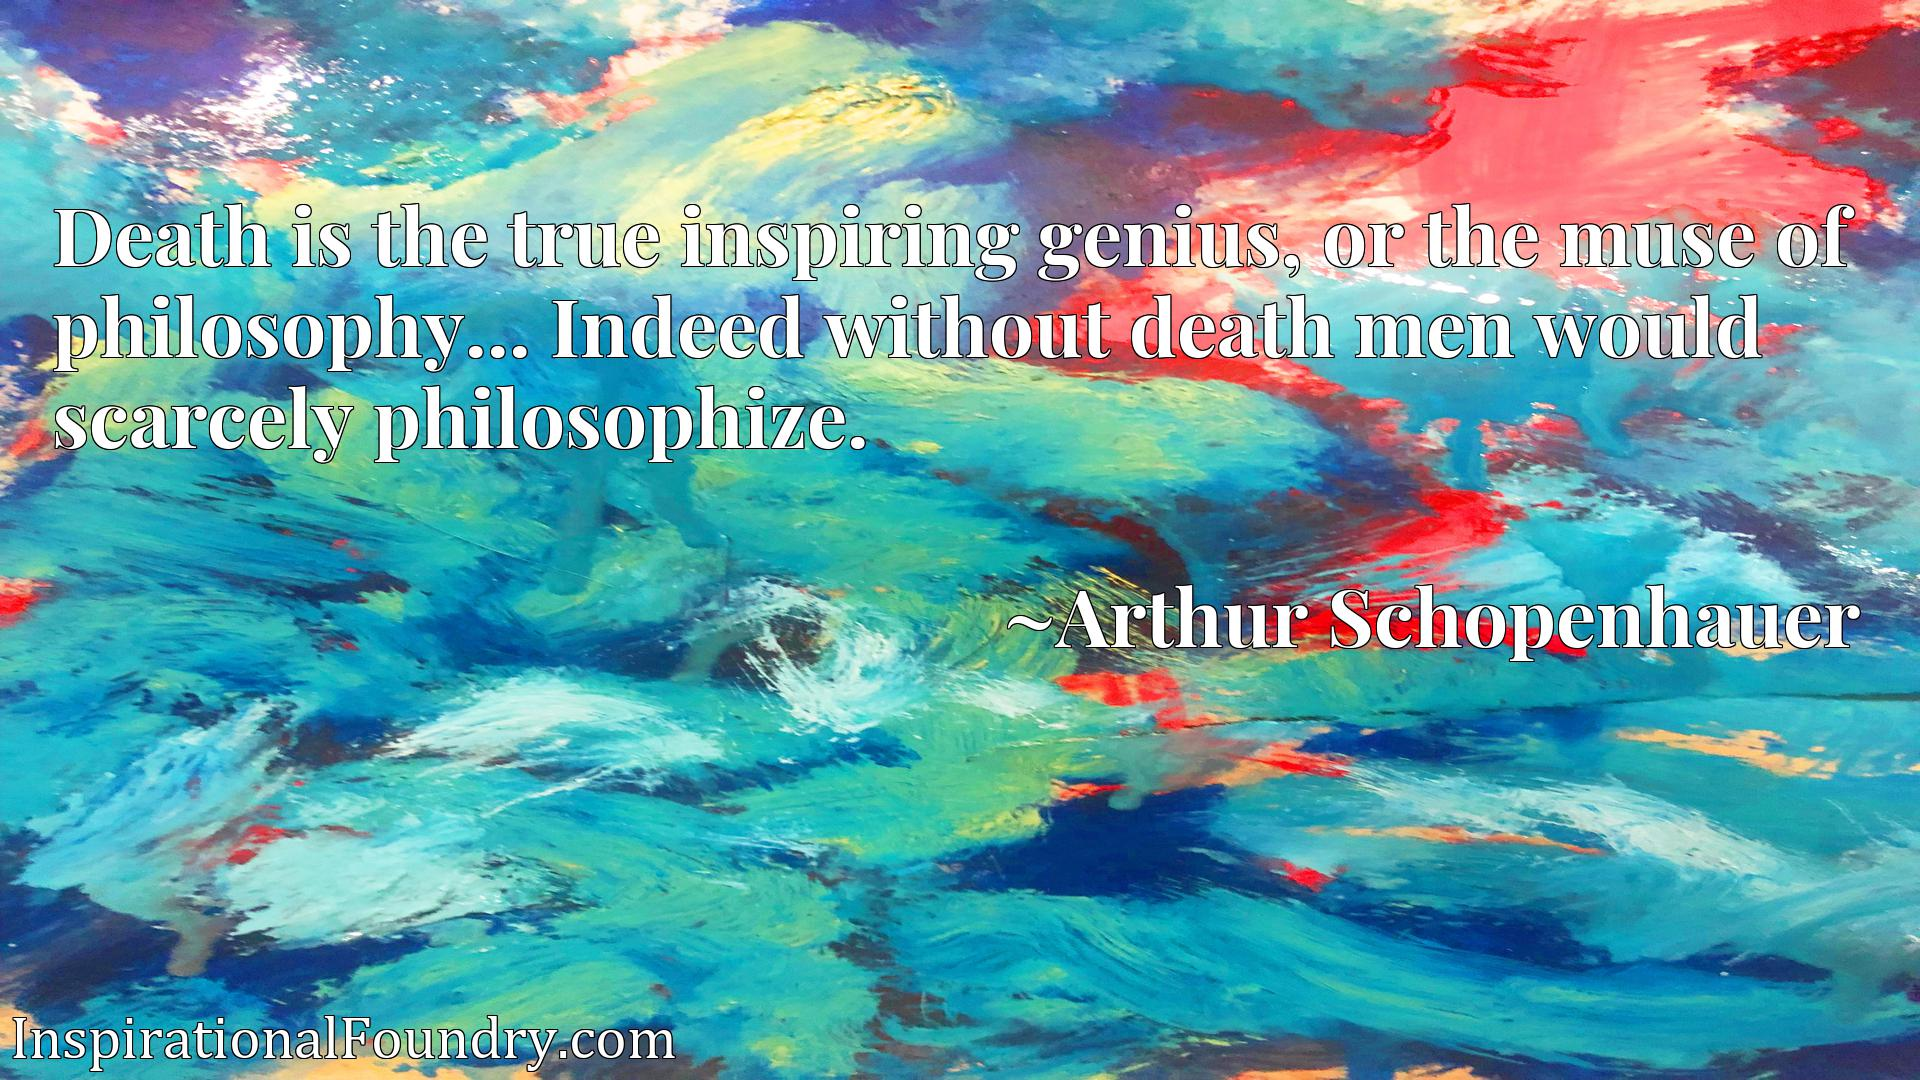 Death is the true inspiring genius, or the muse of philosophy... Indeed without death men would scarcely philosophize.